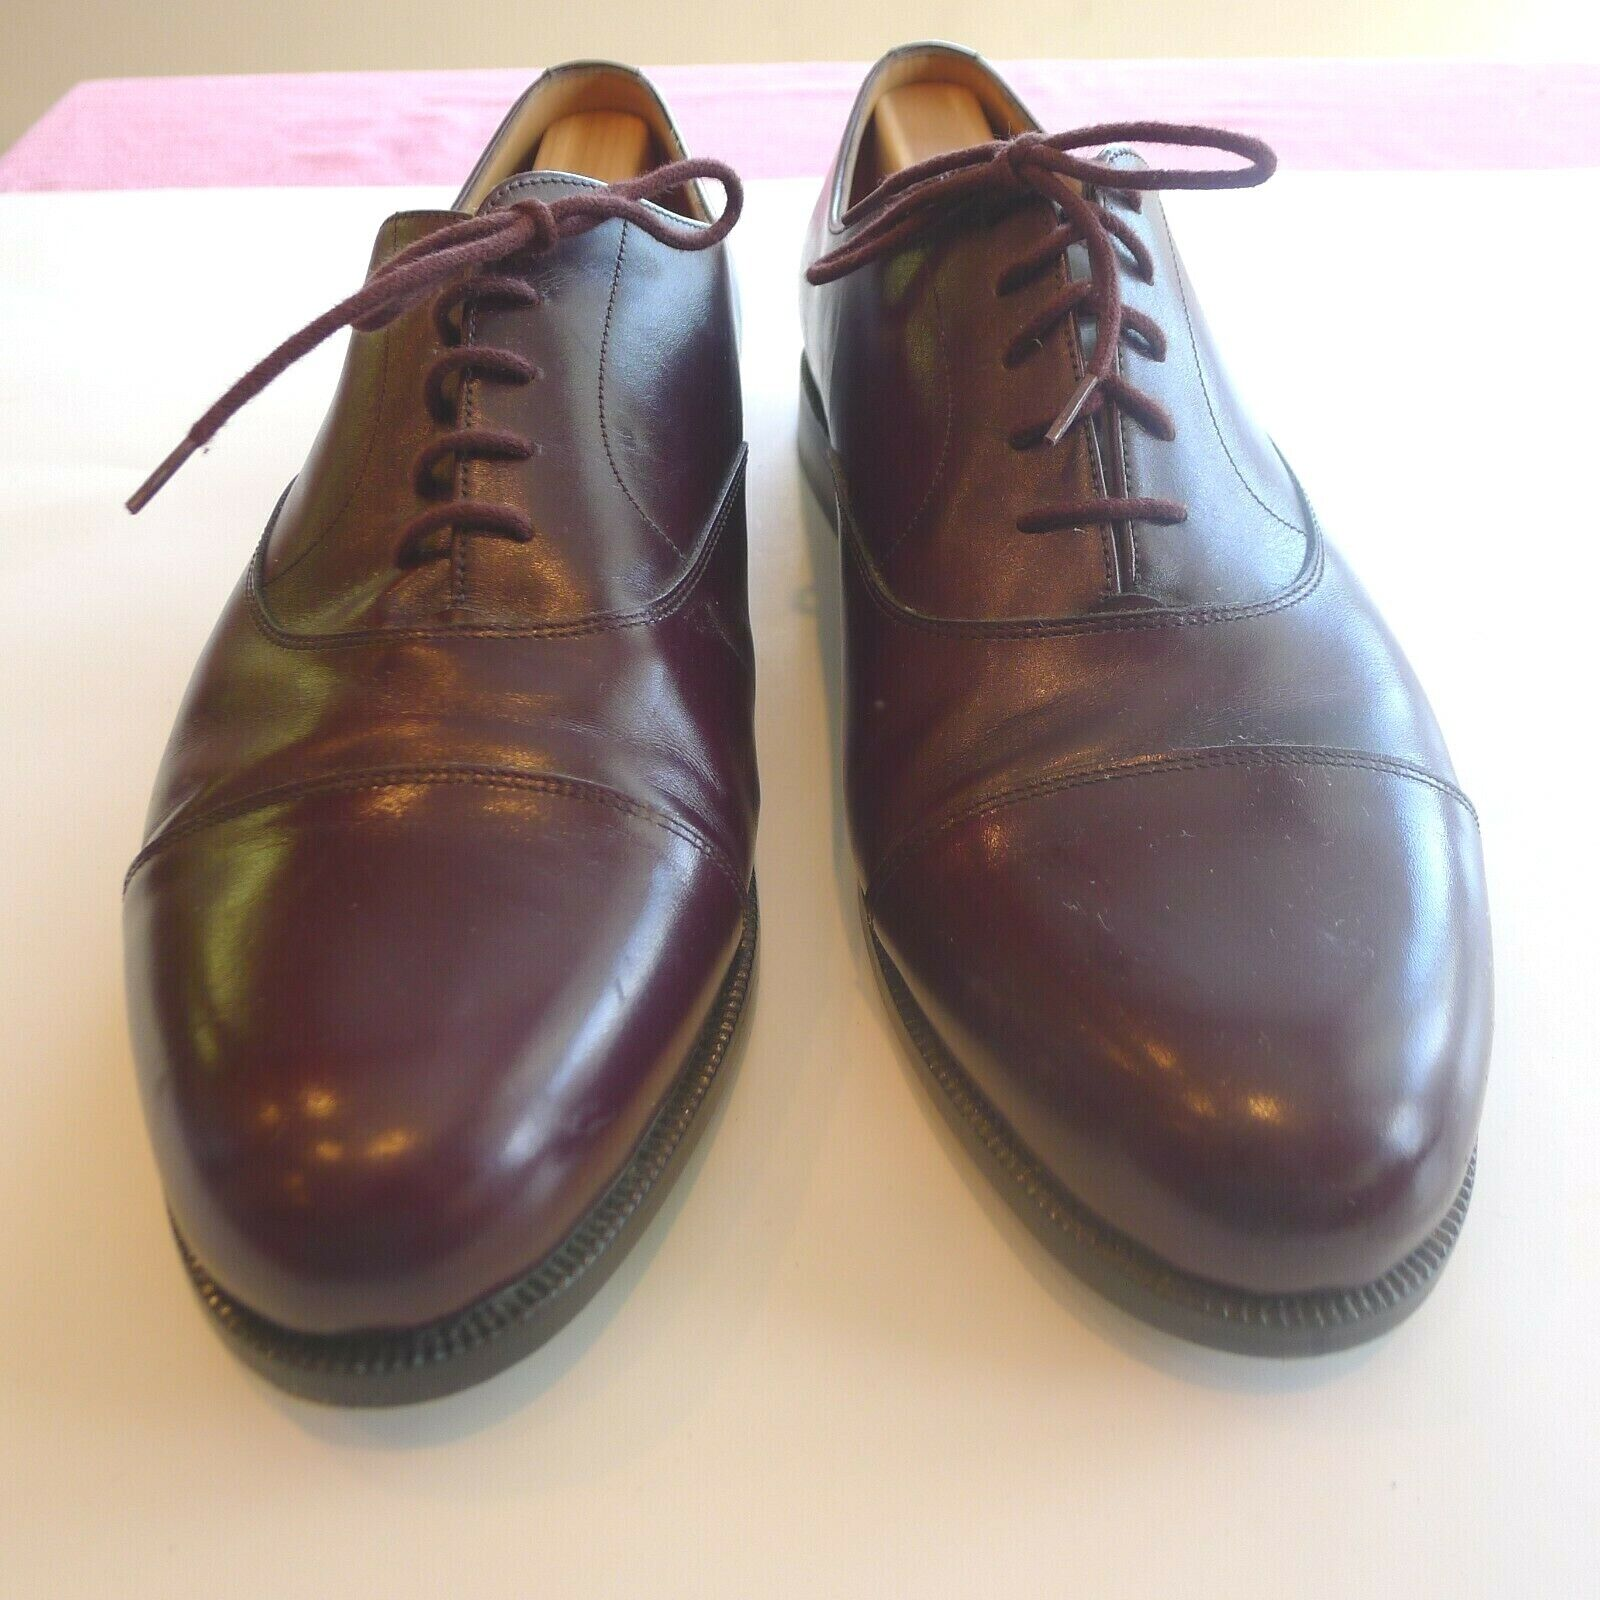 Bally Men's Cap Toe Lace Up 11E Burgundy